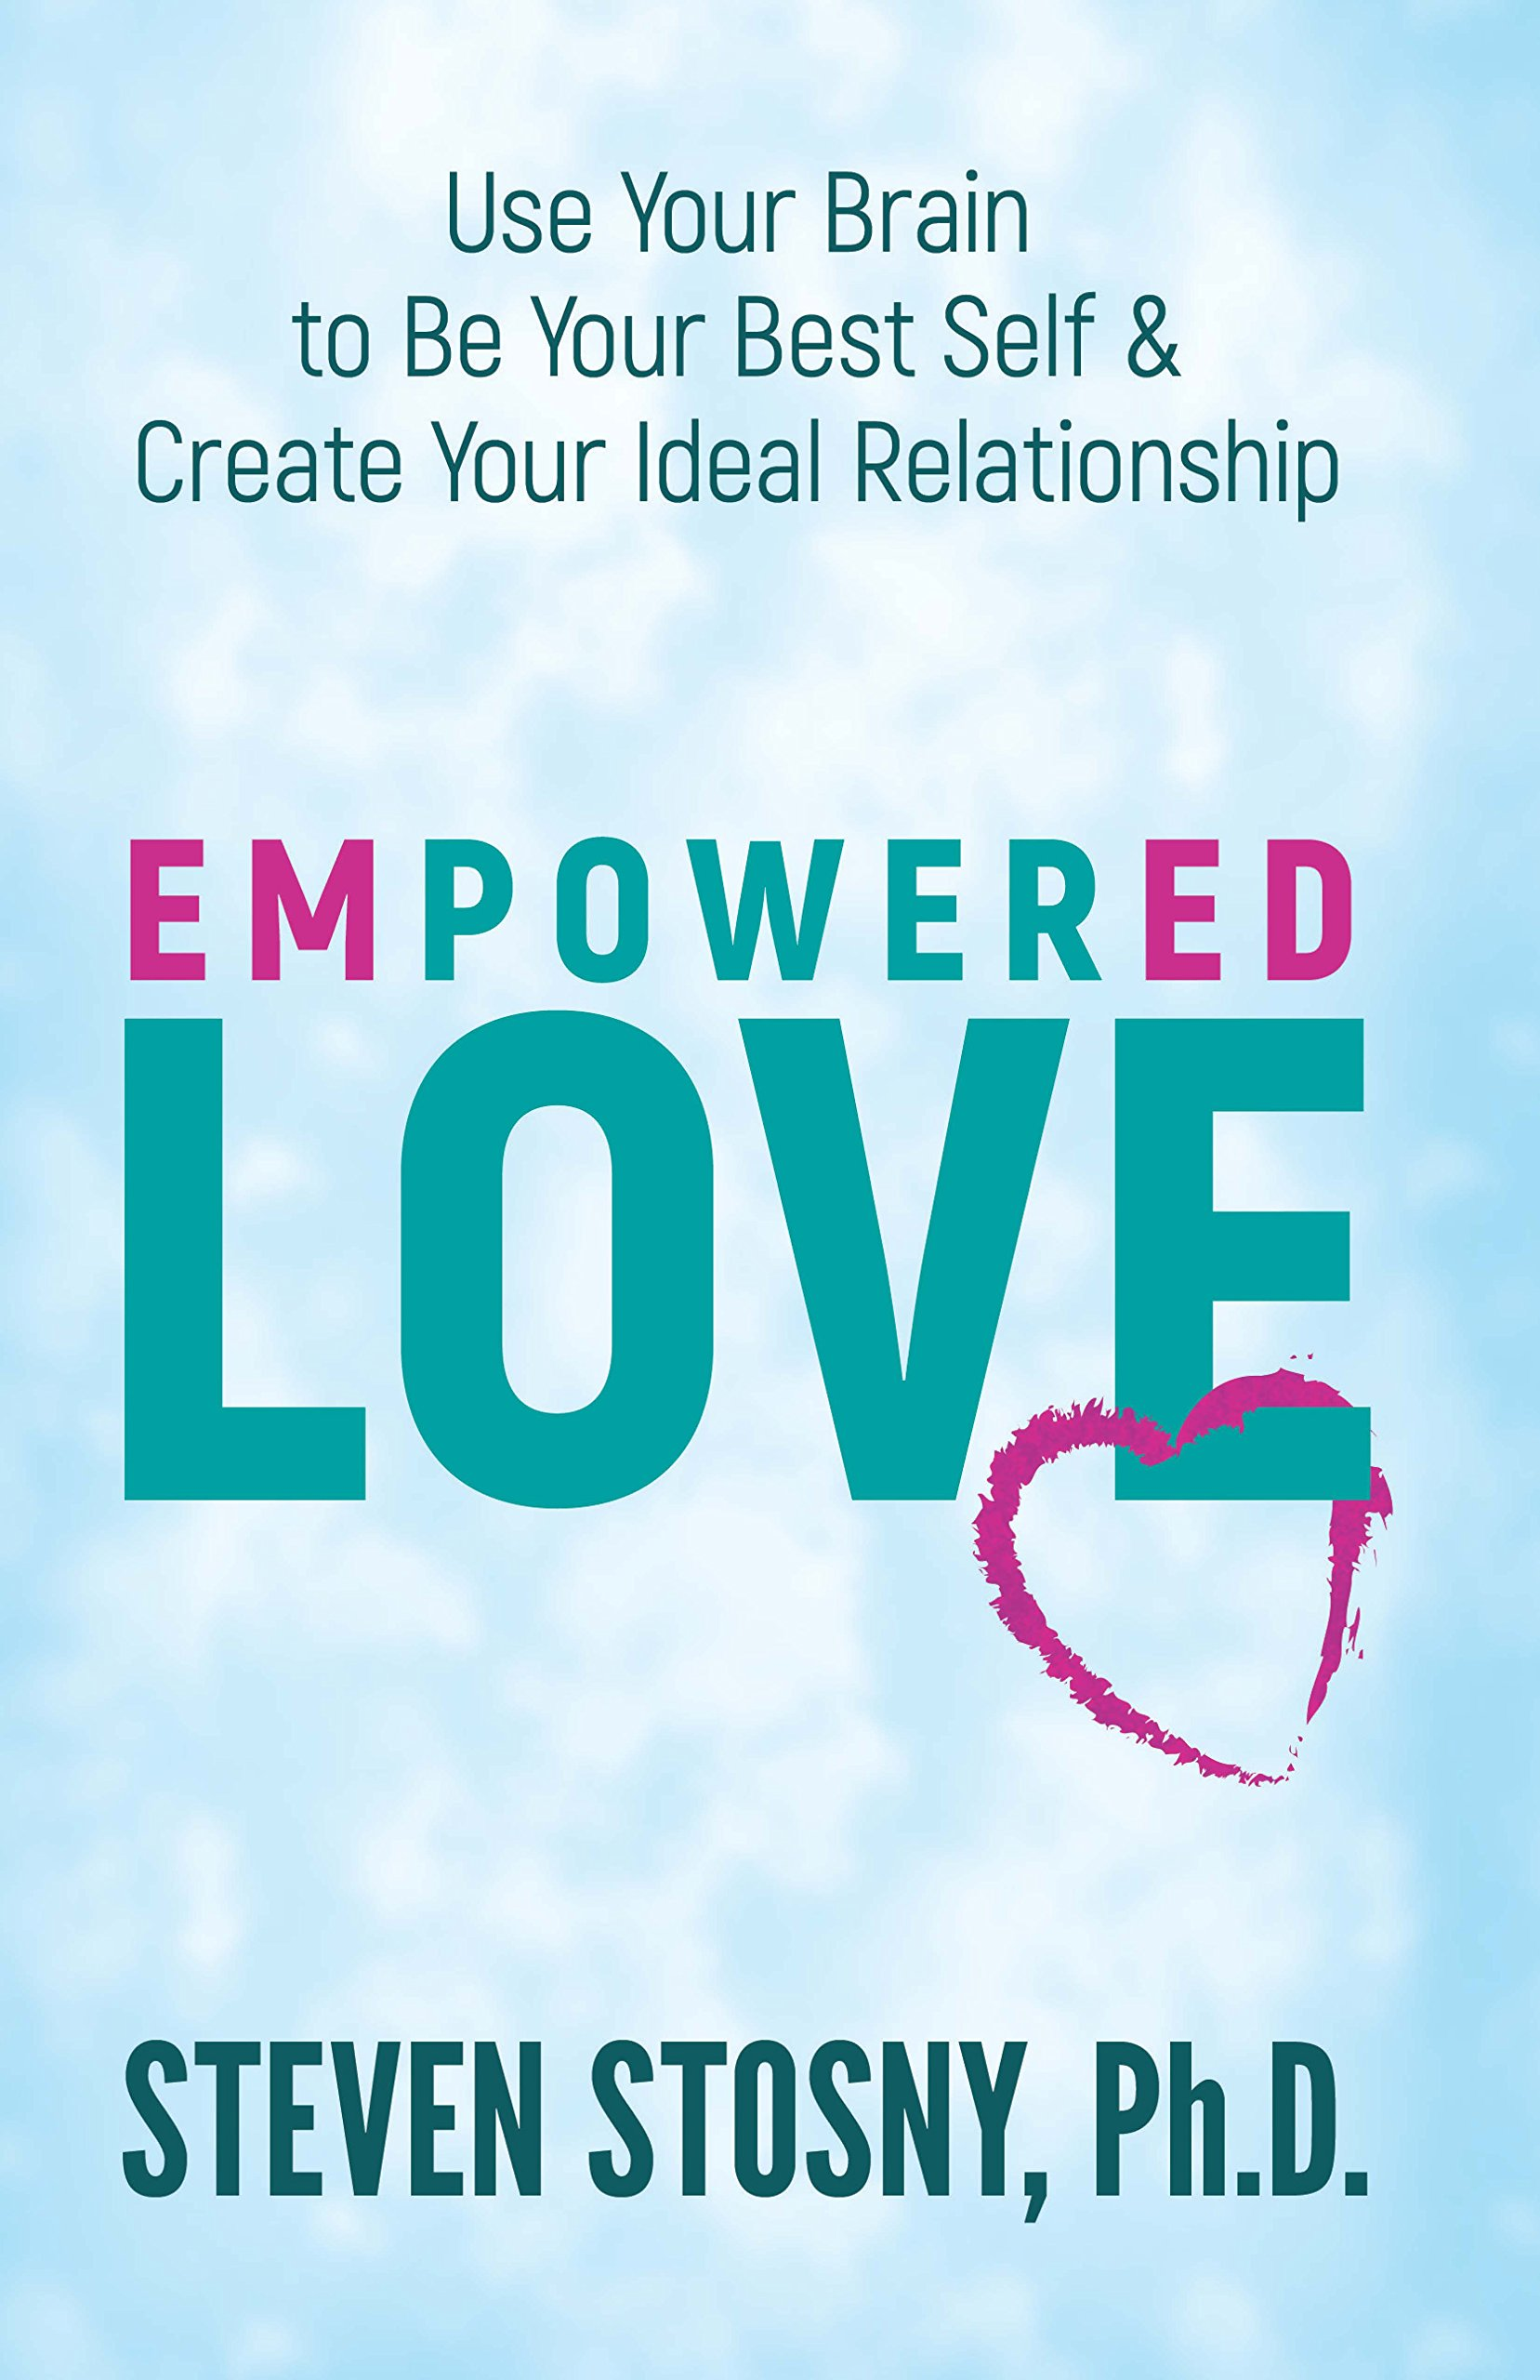 Empowered Love: Use Your Brain to Be Your Best Self and Create Your Ideal Relationship